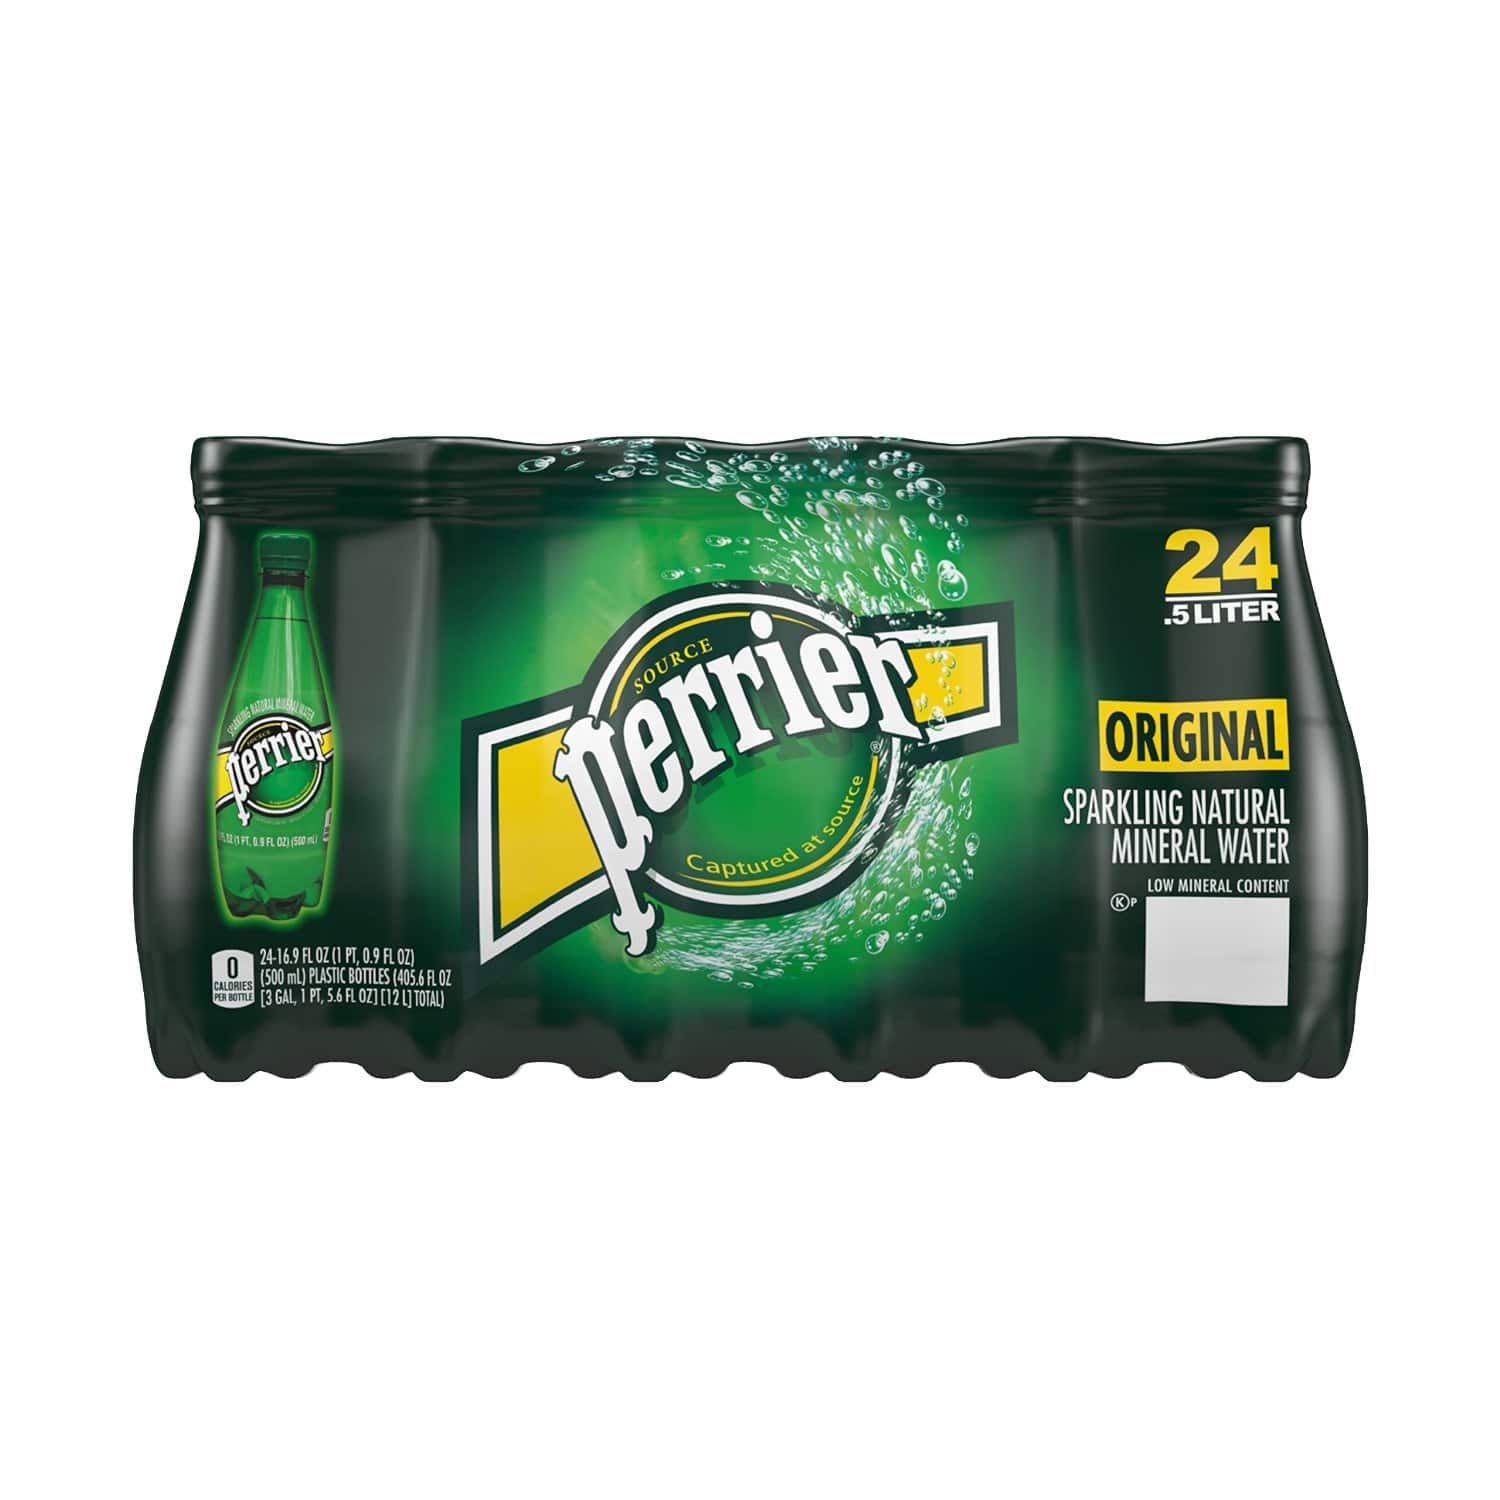 Perrier Sparkling Natural Mineral Water, 16.9-ounce plastic bottles (Pack of 24) $11.94